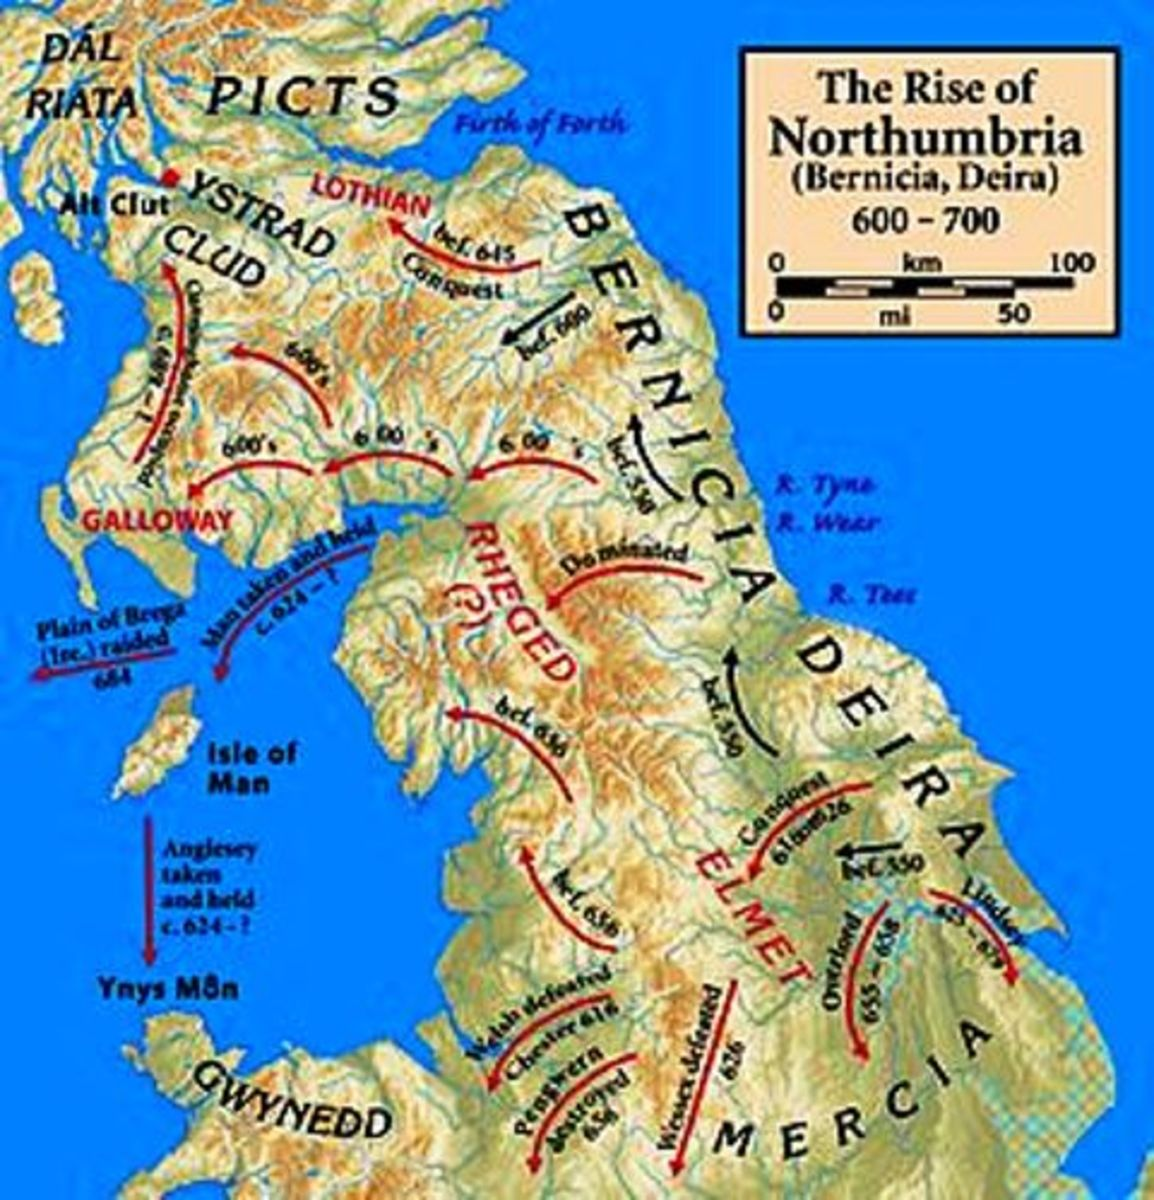 The early campaigns of the Northumbrian kings in and beyond the extended kingdoms. More than once a strong king of Northumbria would be 'Bretwalda' or over-king, acknowledged by Briton, Gael, Saxon and other Aengle (Anglian) kings